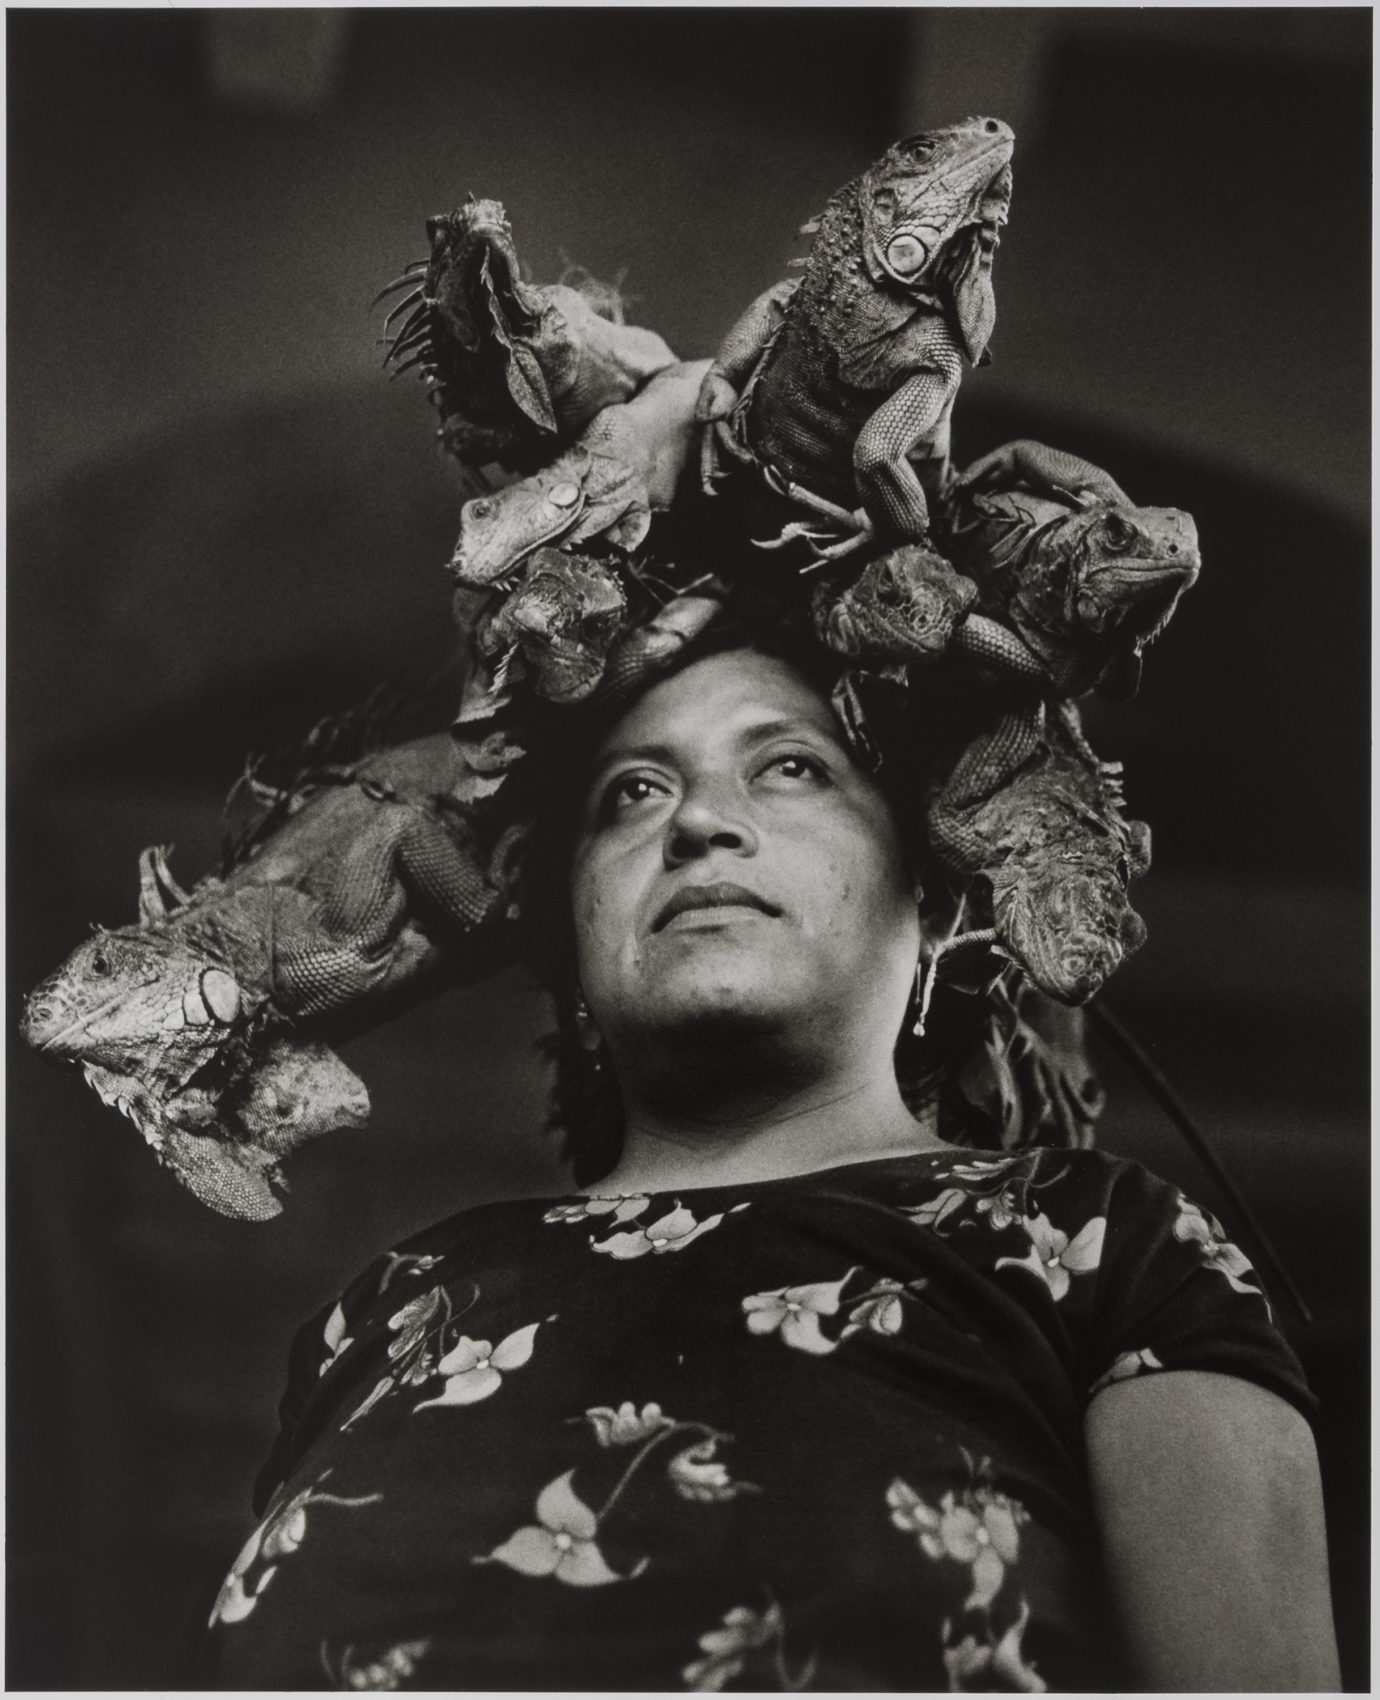 Our lady of the iguanas by graciela iturbide courtesy museum of fine arts